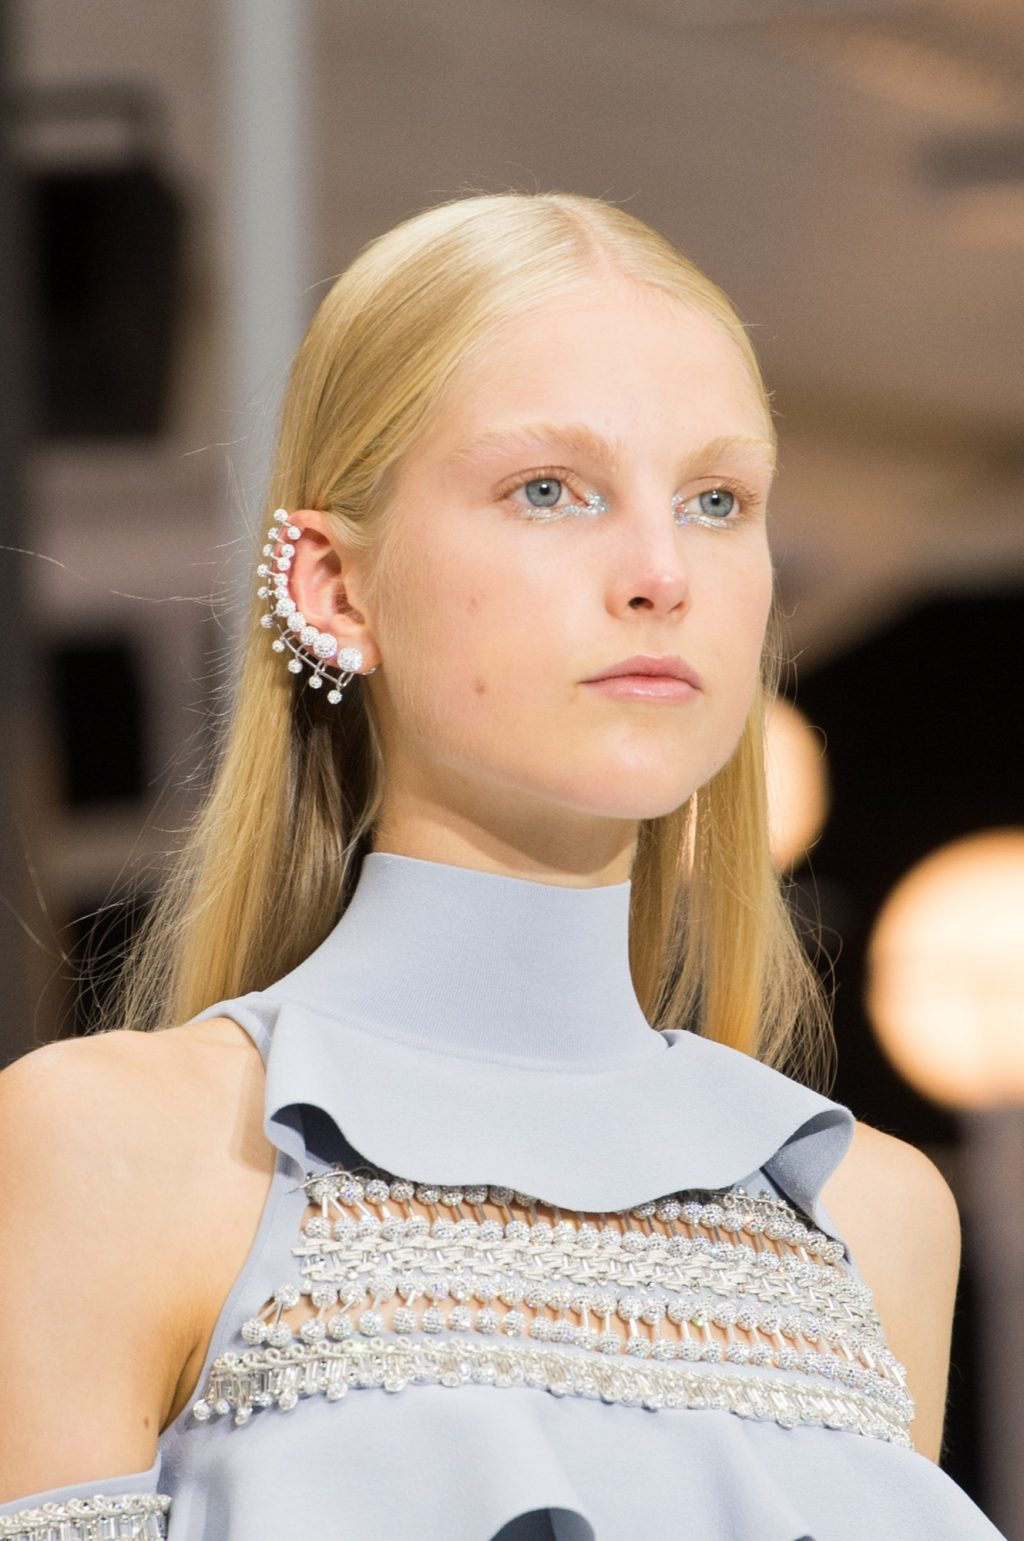 38 Accessories That Stole the Spotlight at London Fashion Week